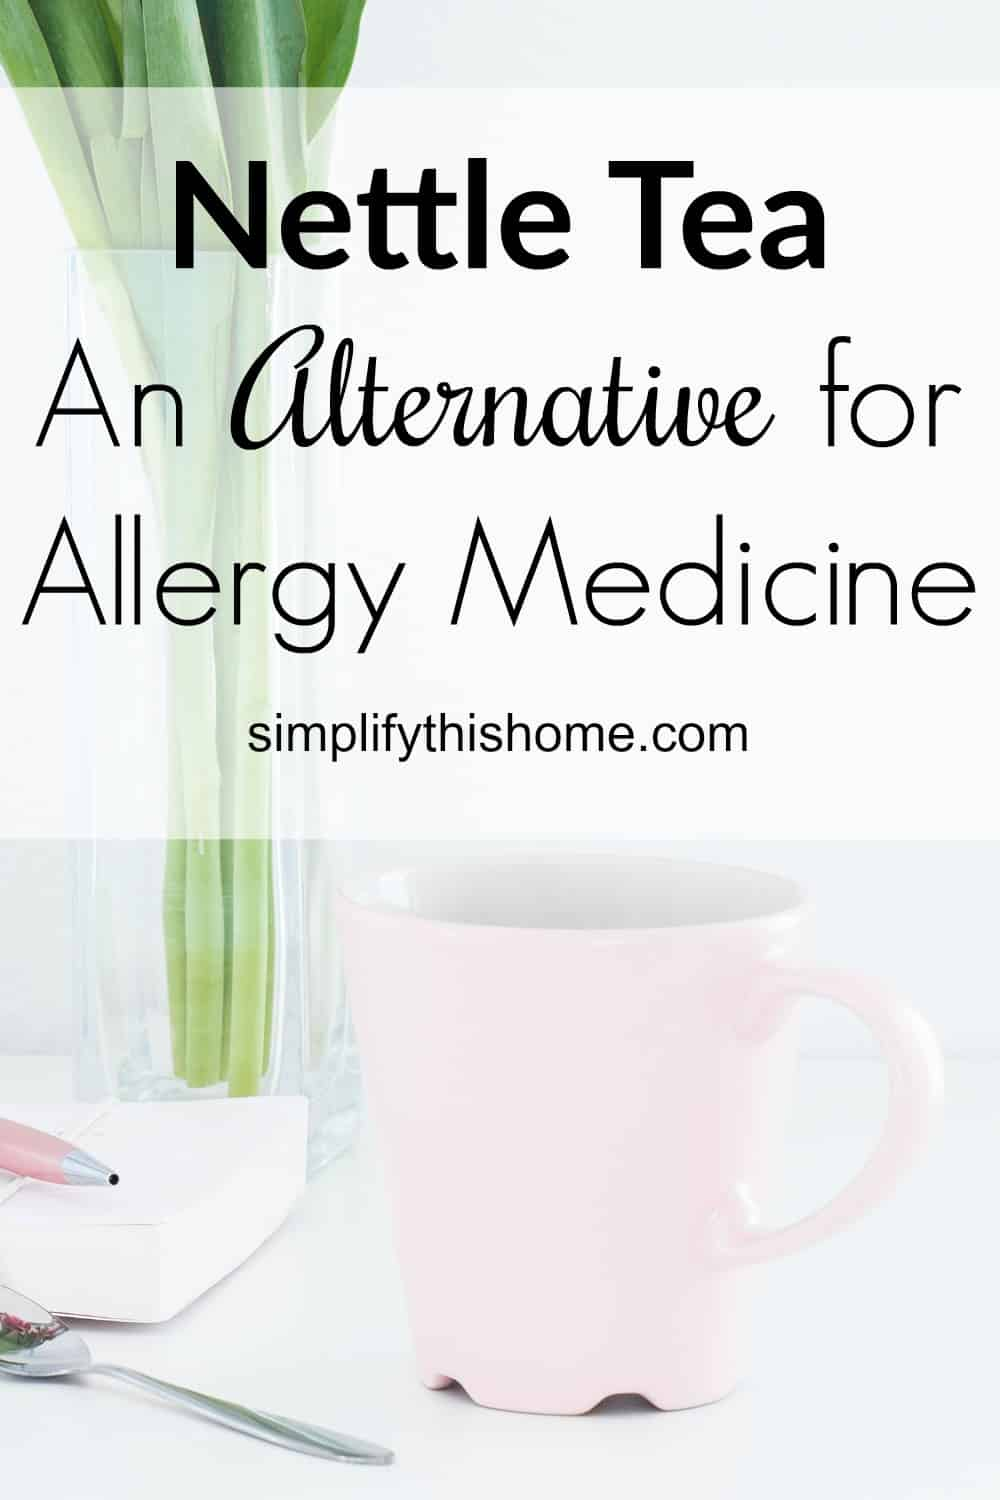 nettle tea for allergies